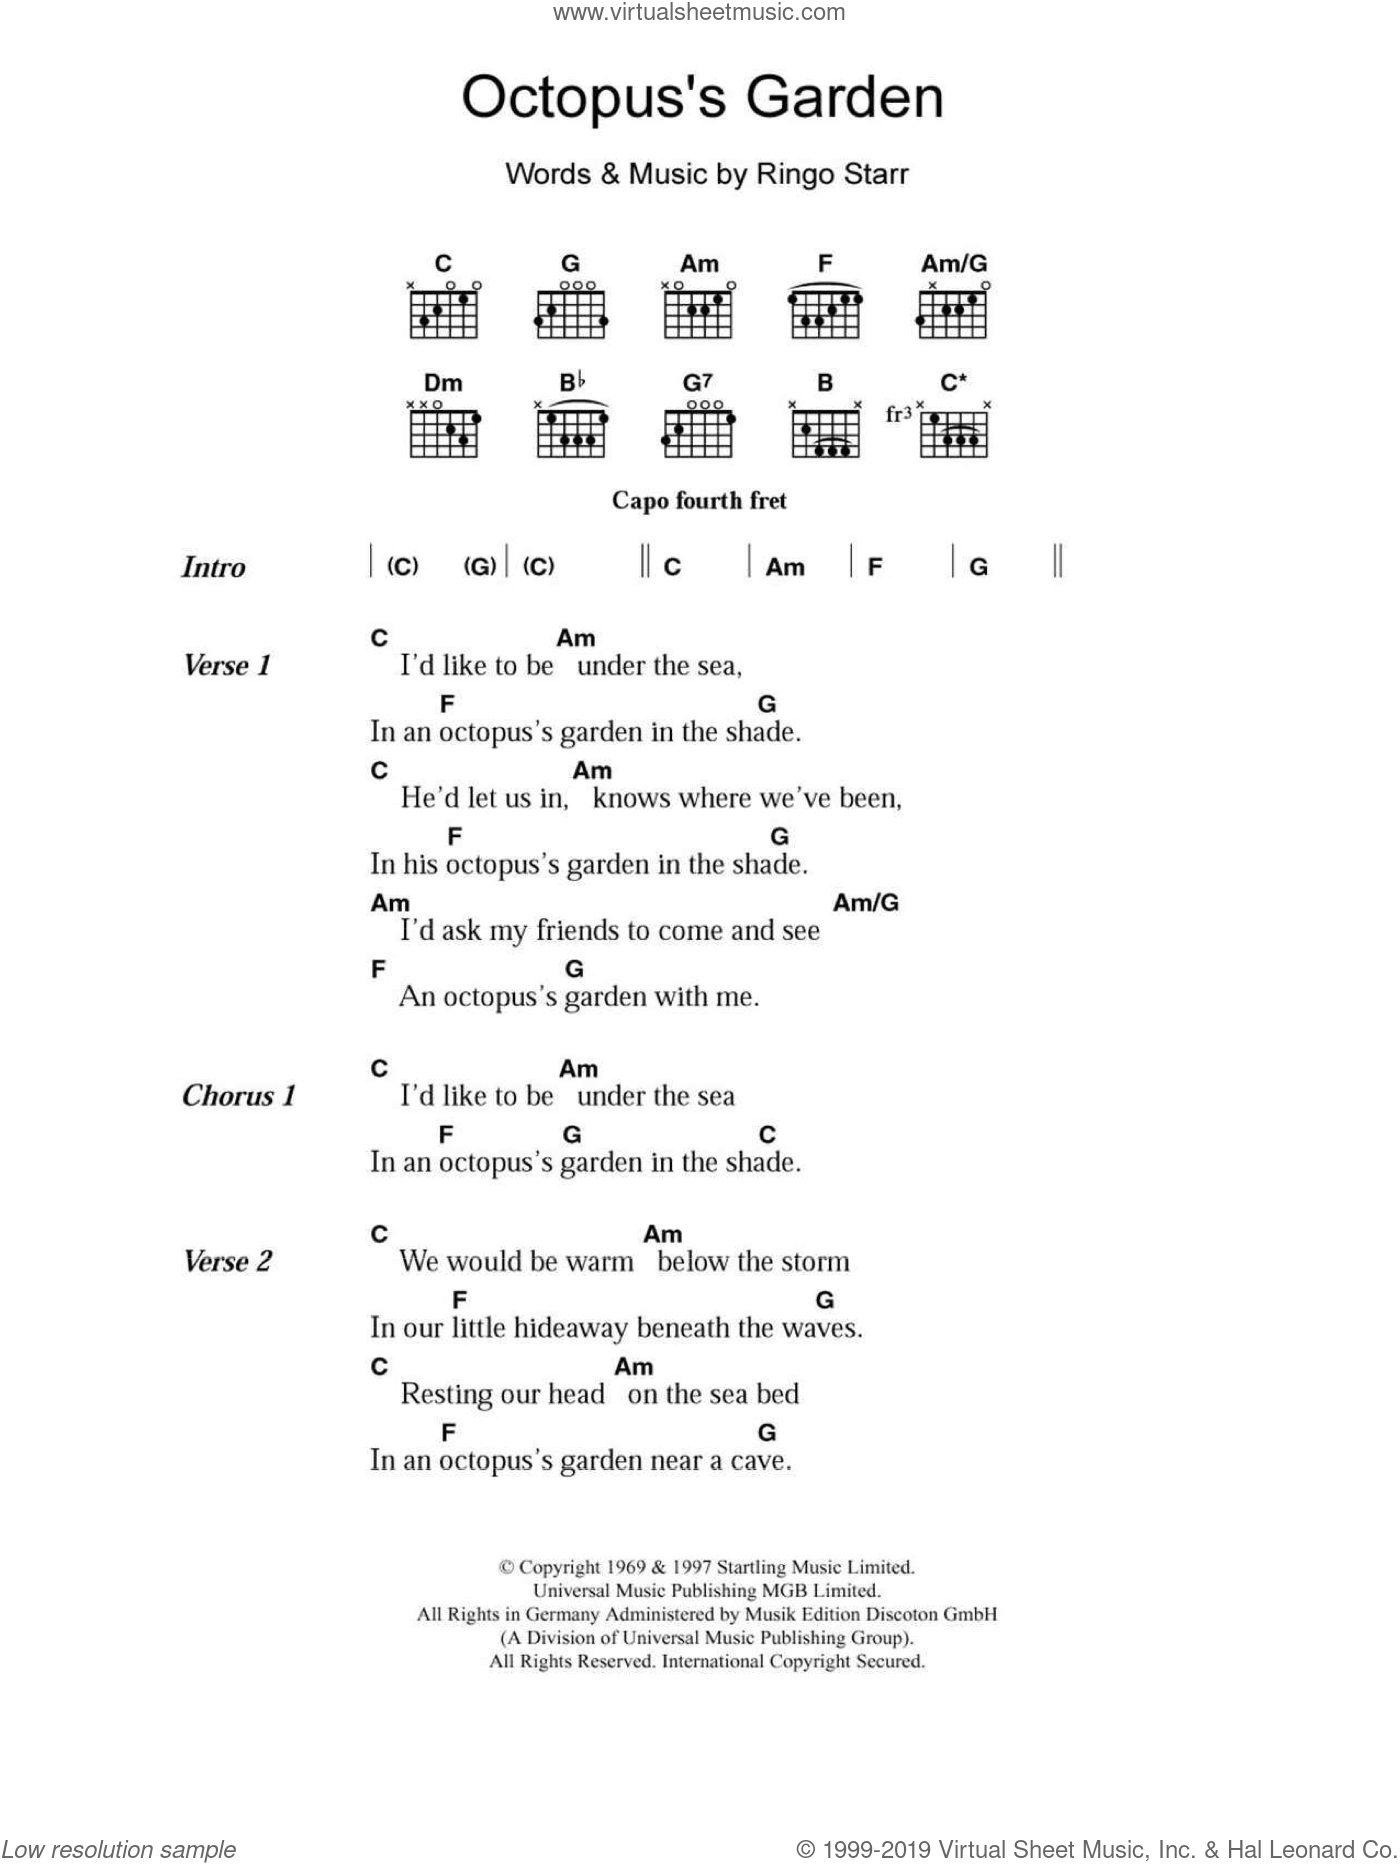 Octopus's Garden sheet music for guitar (chords) by The Beatles and Ringo Starr, intermediate